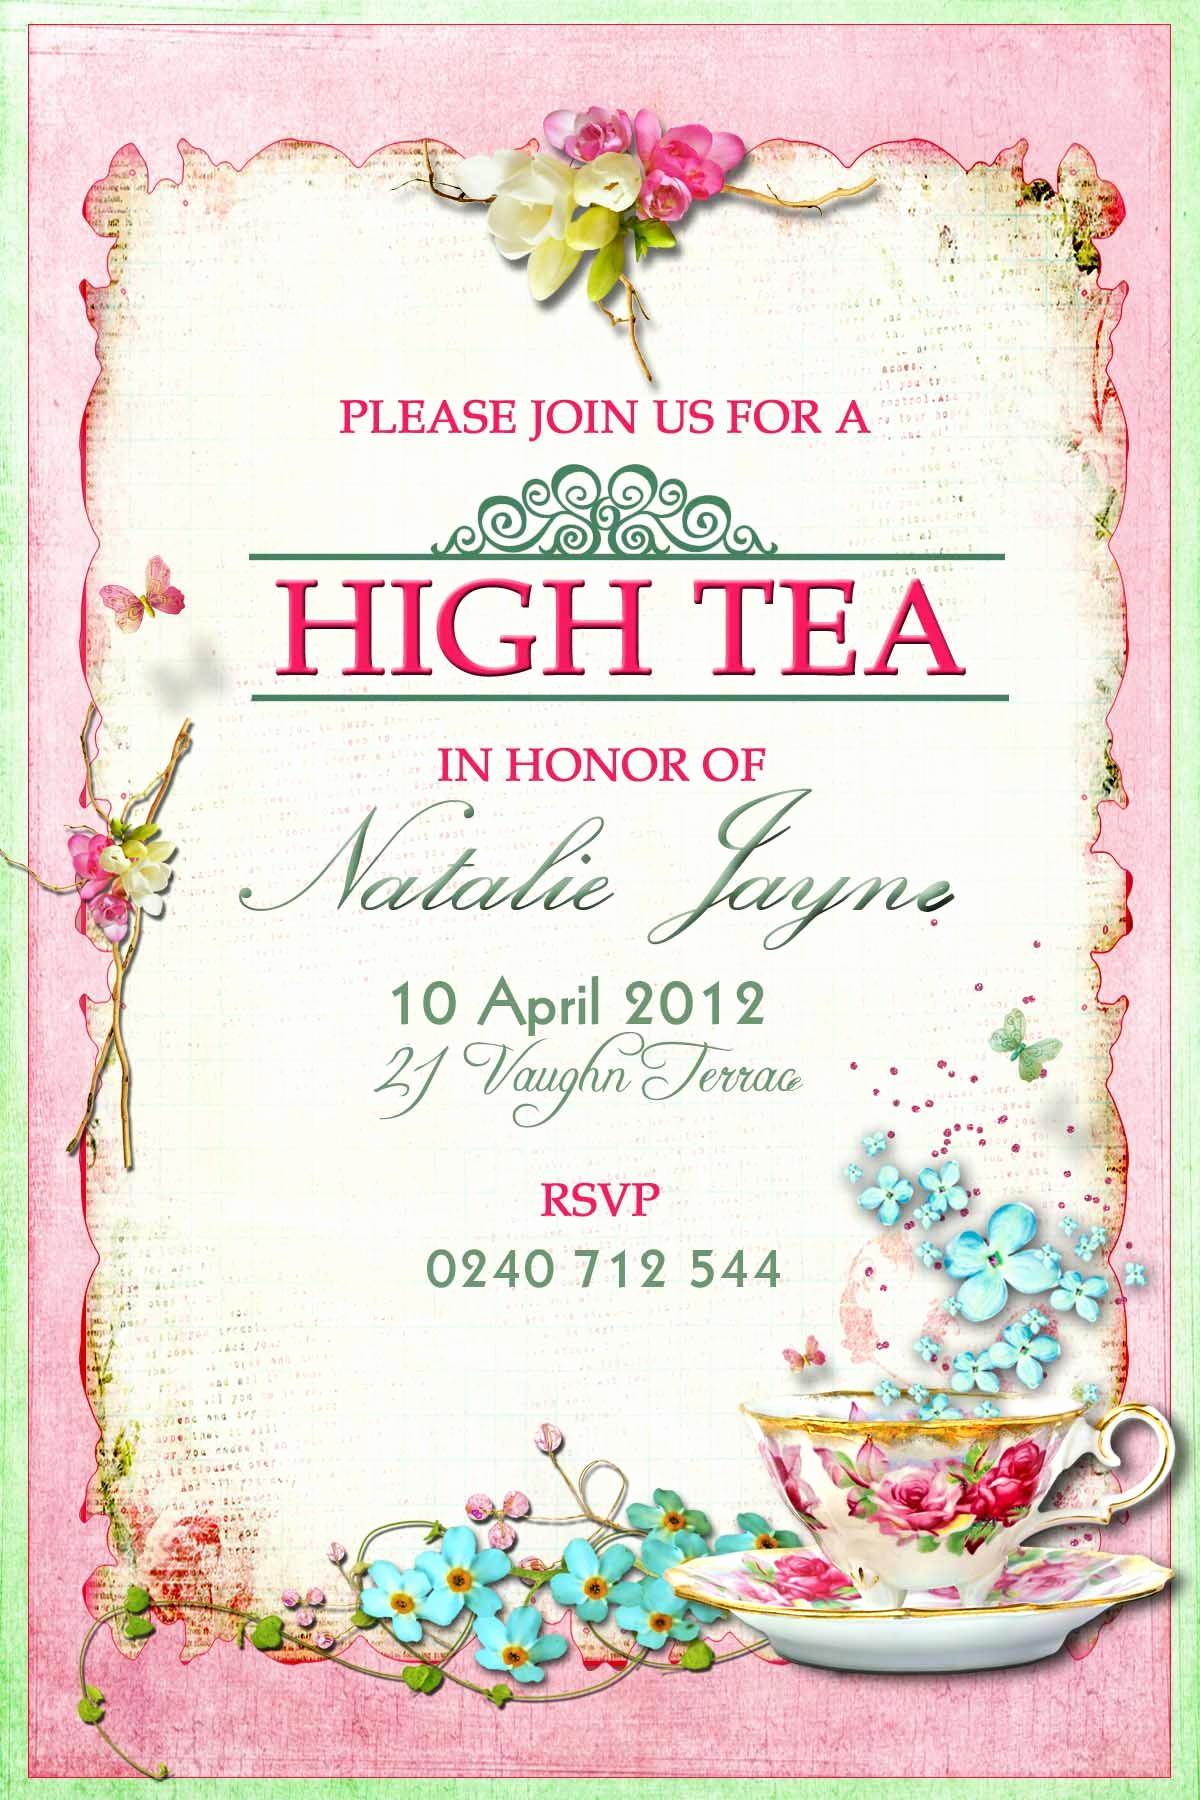 Tea Party Invitation Template Word Elegant Victorian High Tea Party Invitations Surprise Party